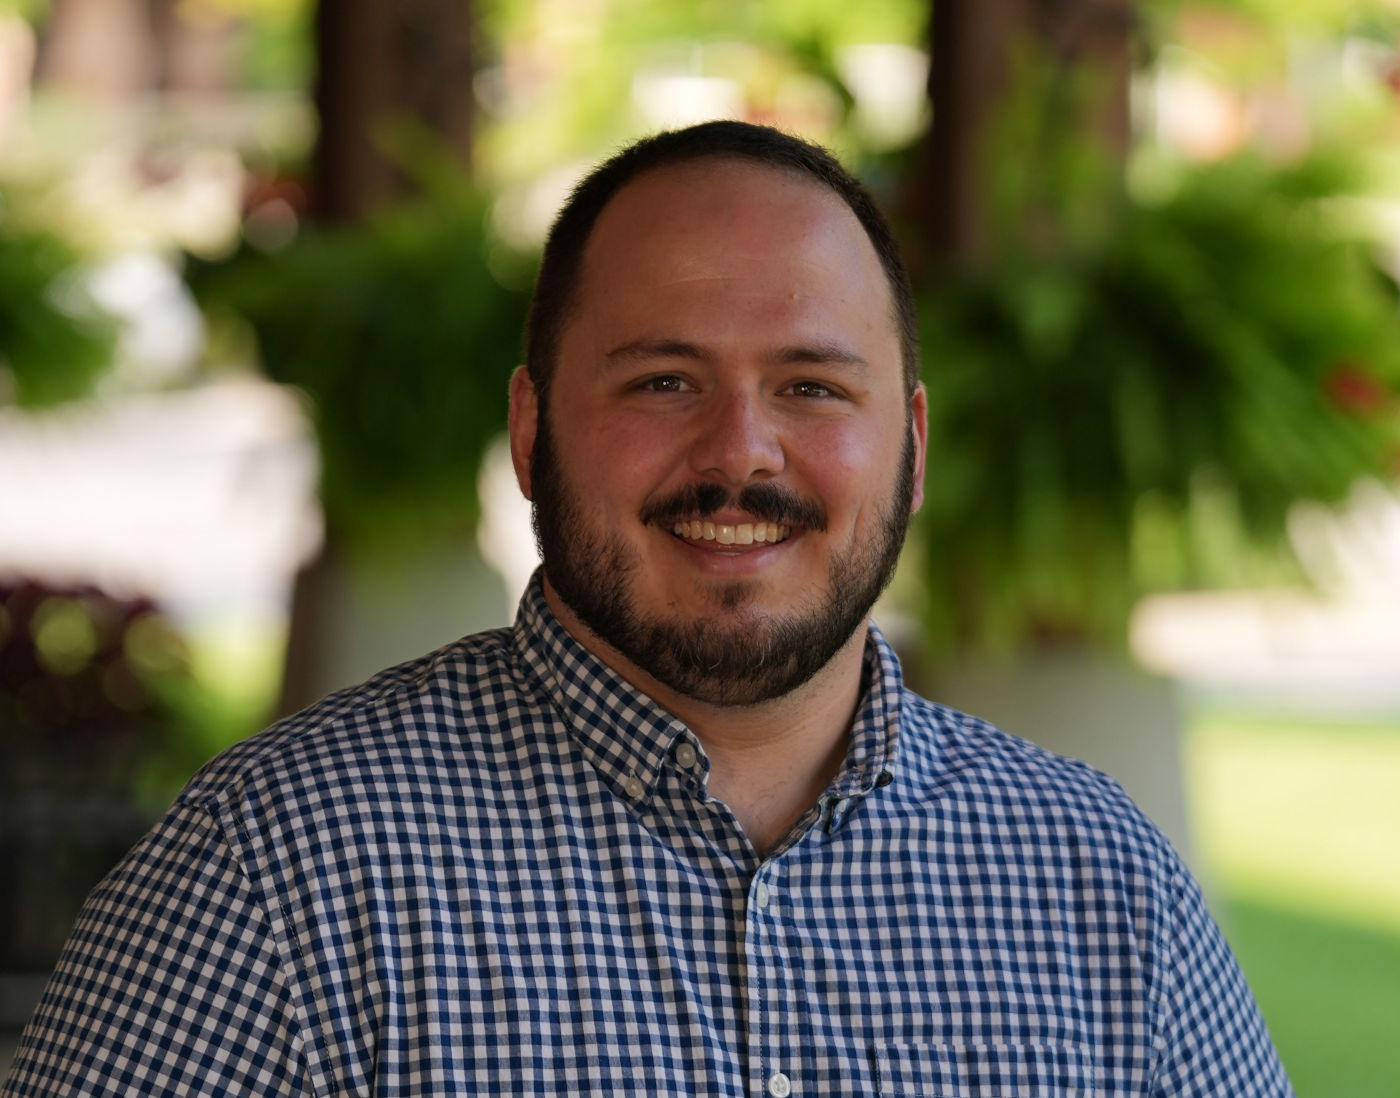 Ben Chociej, candidate for Mission City Council